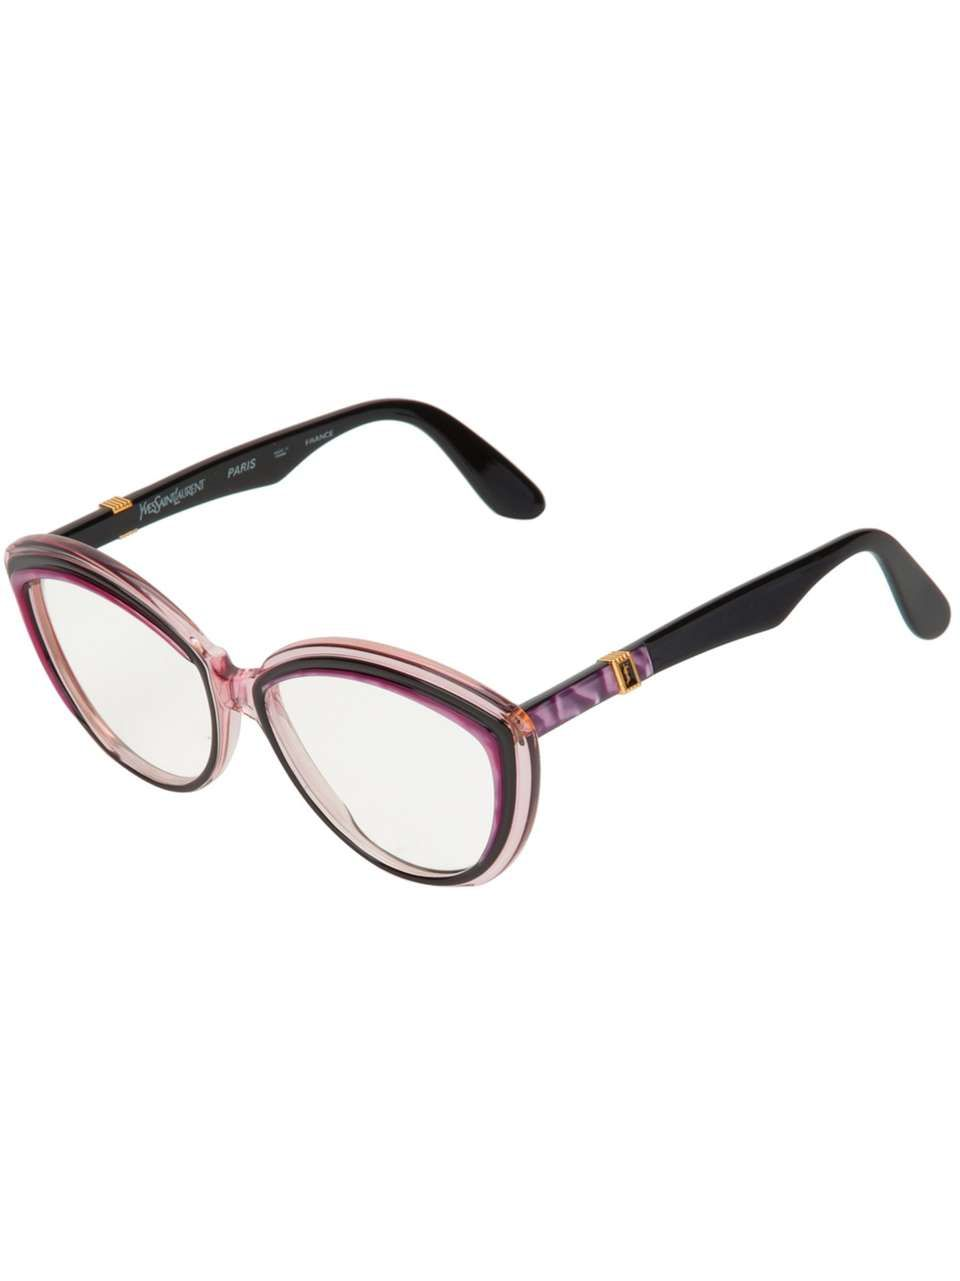 Yves Saint Laurent Vintage cat-eye optical glasses | Outfit ...